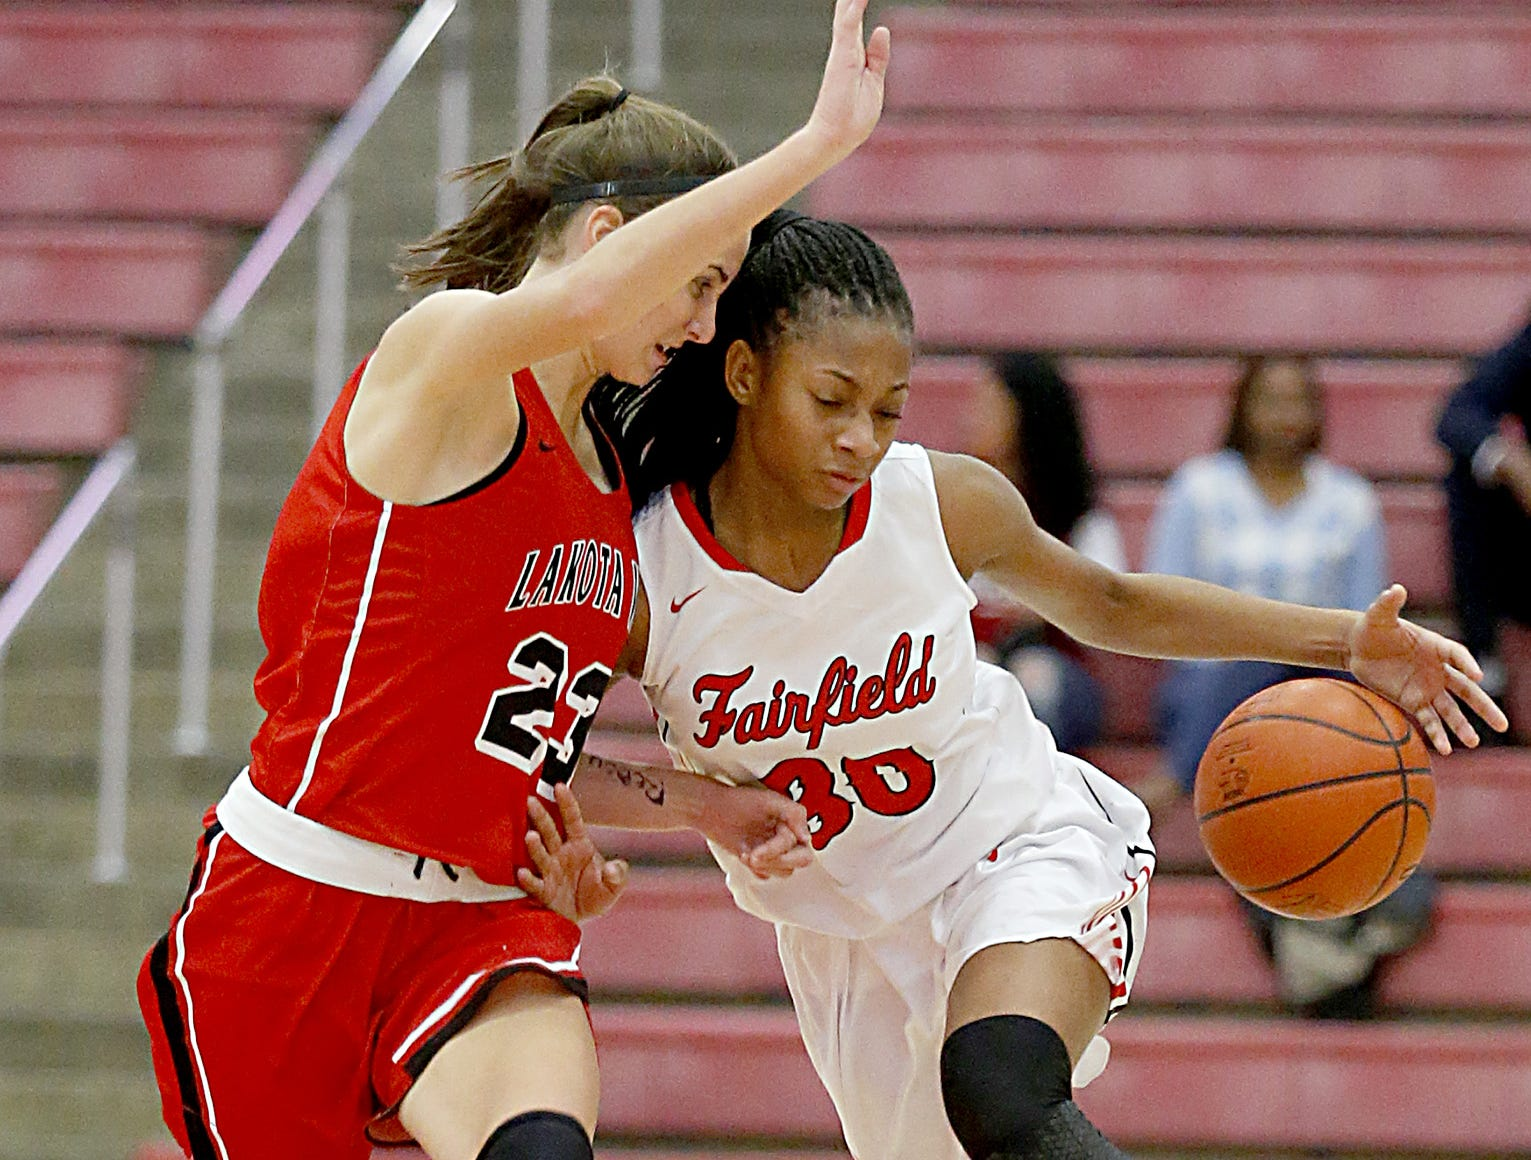 Lakota West's Kailyn Dudukovich pressures Fairfield forward Tori Williams during their game at Fairfield Saturday, Dec. 1, 2018.